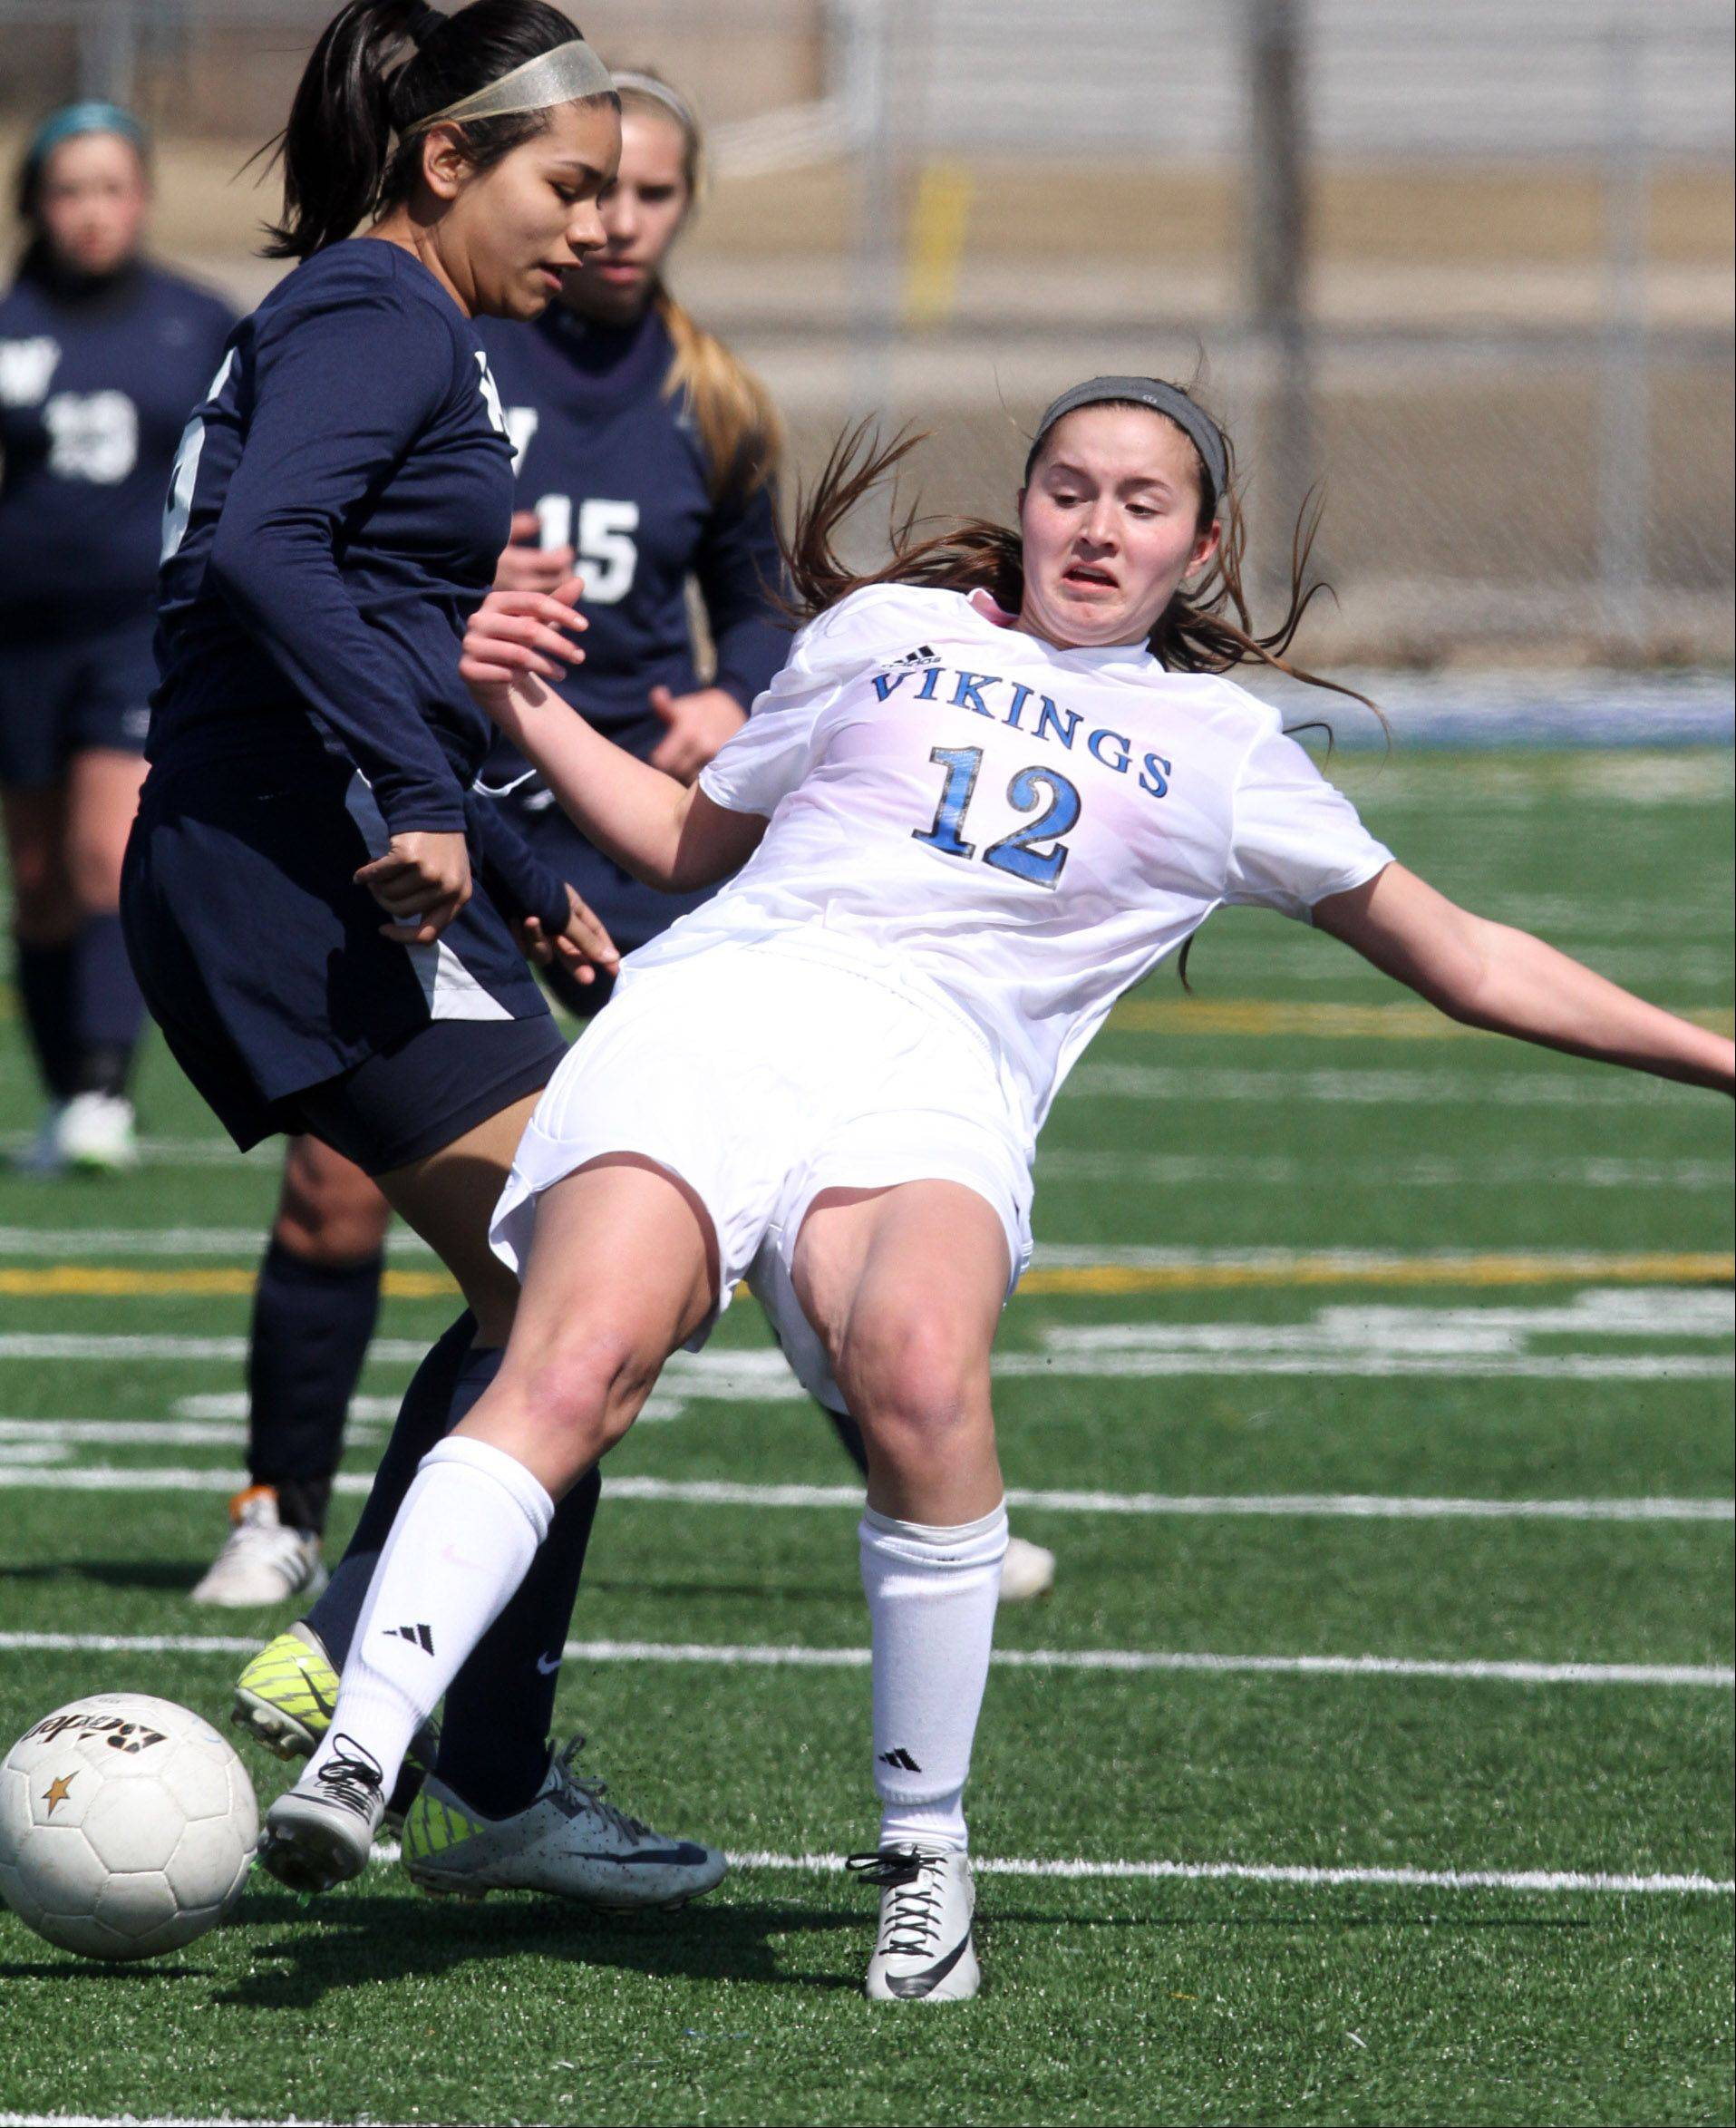 Geneva's Maggie Bodine kicks the ball as she is slipping against West Aurora defender at Geneva on Saturday, March 23, 2013.